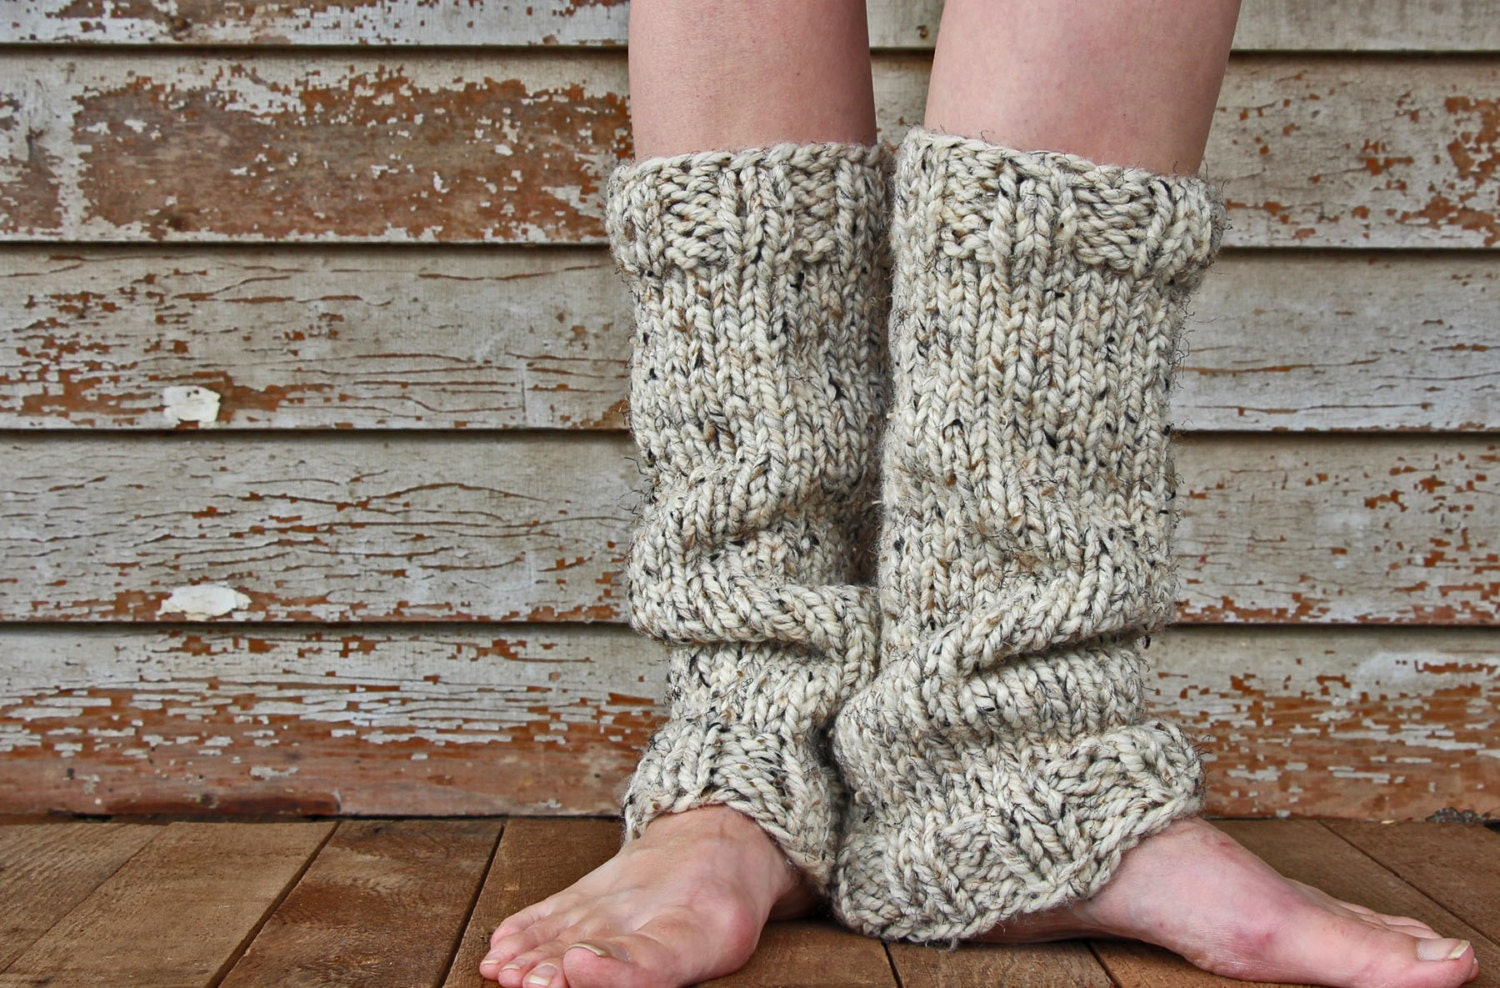 Leg Warmers Knitting Pattern In The Round : Womens Leg Warmers Knitting Pattern STRENGTH a set of